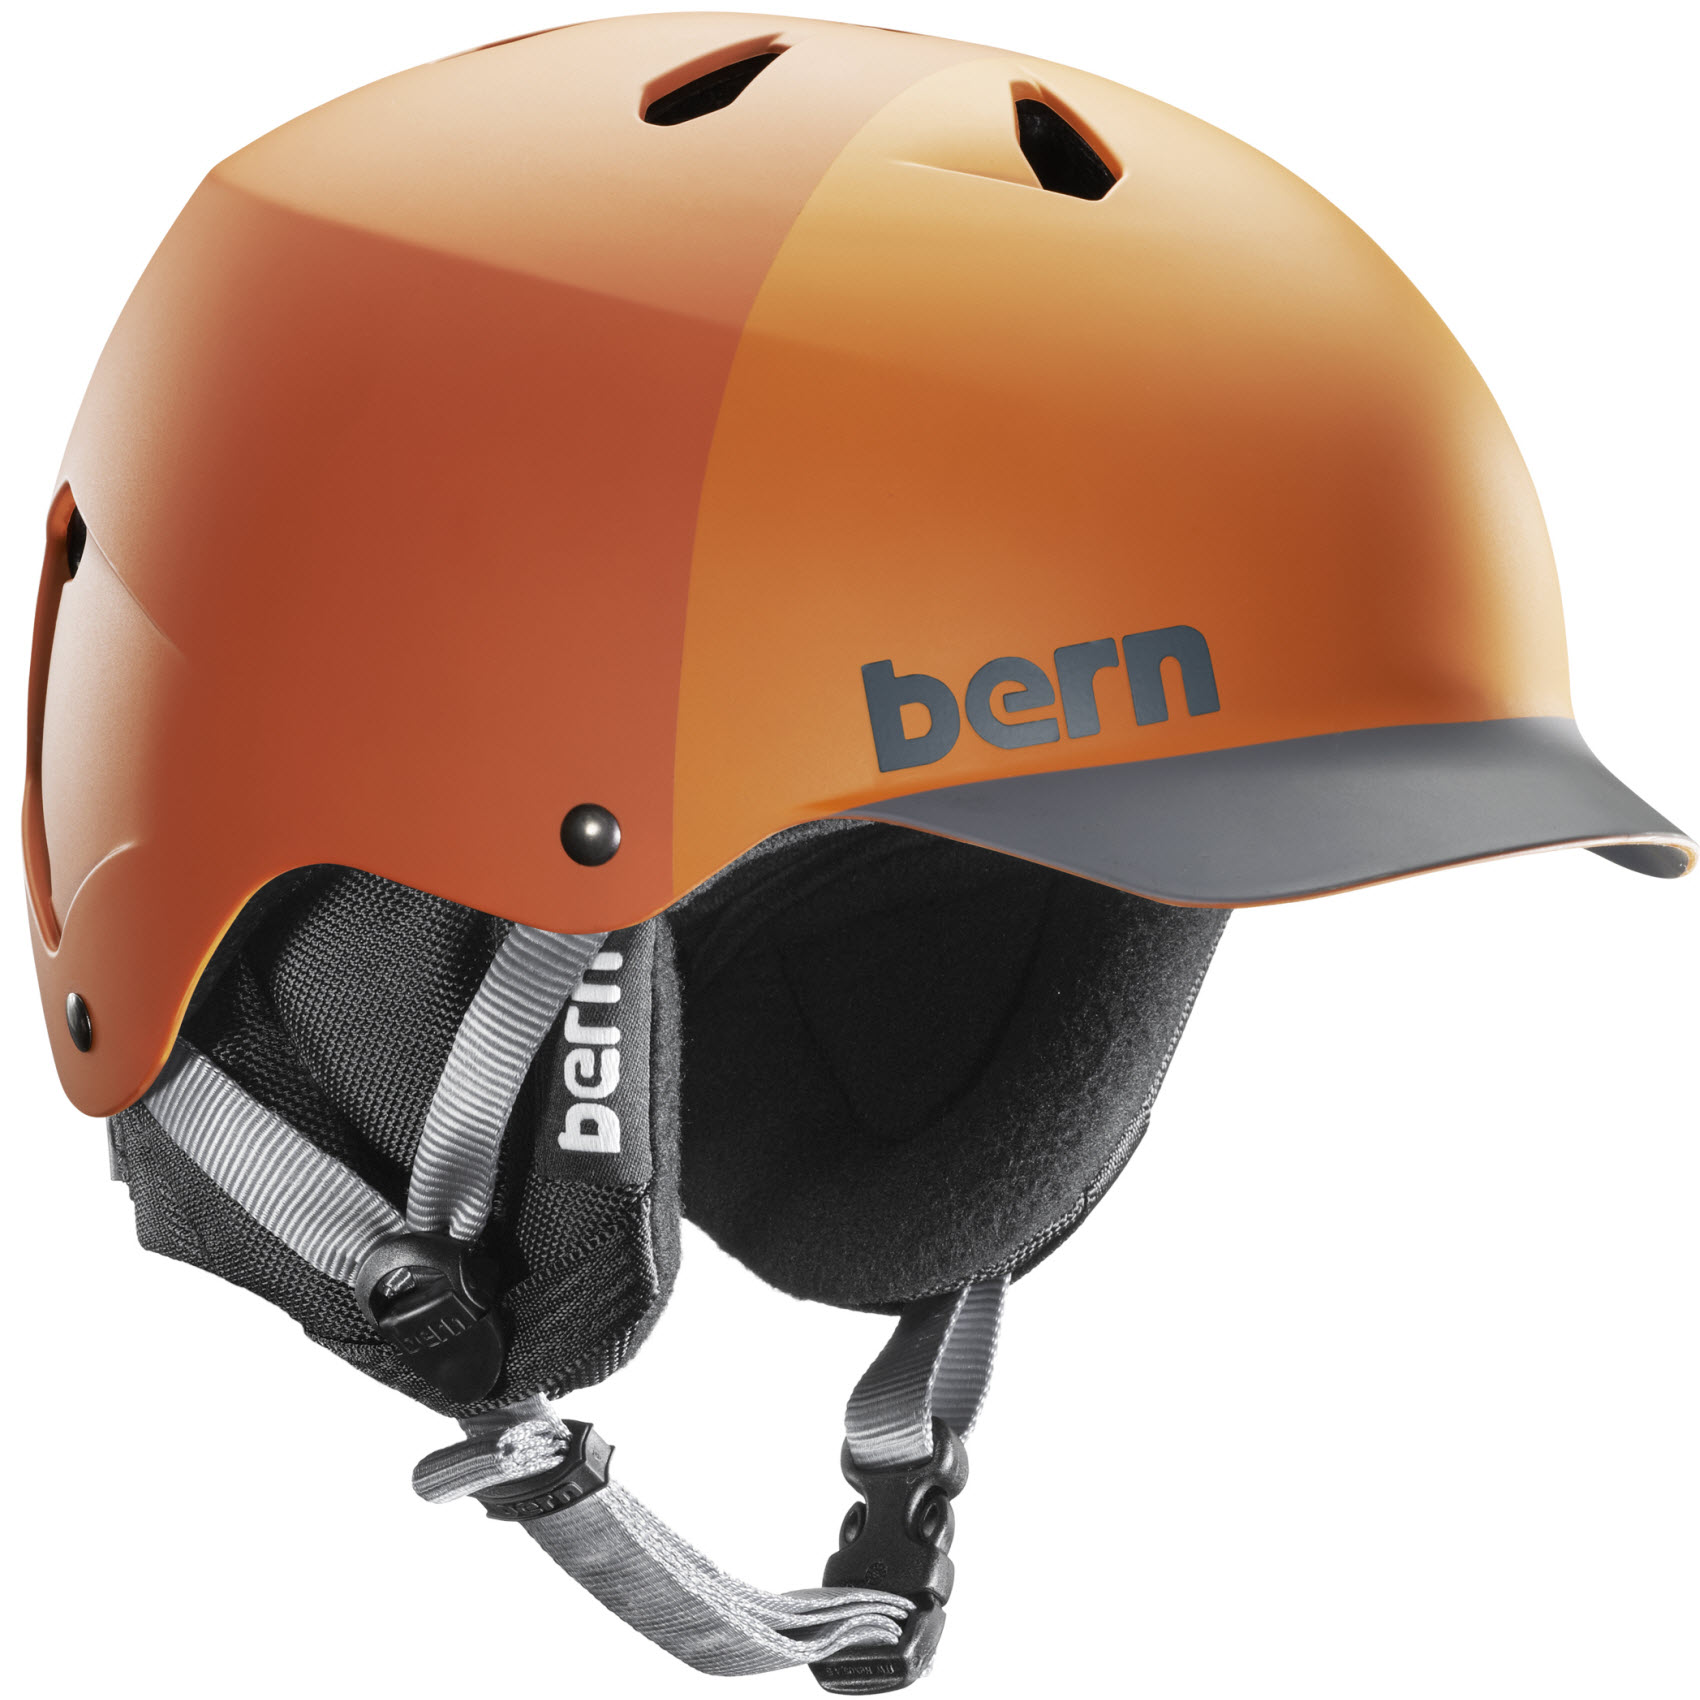 Bern Watts EPS Snowboard Ski Helmet New 2015 in Matte Orange XXL/XXXL